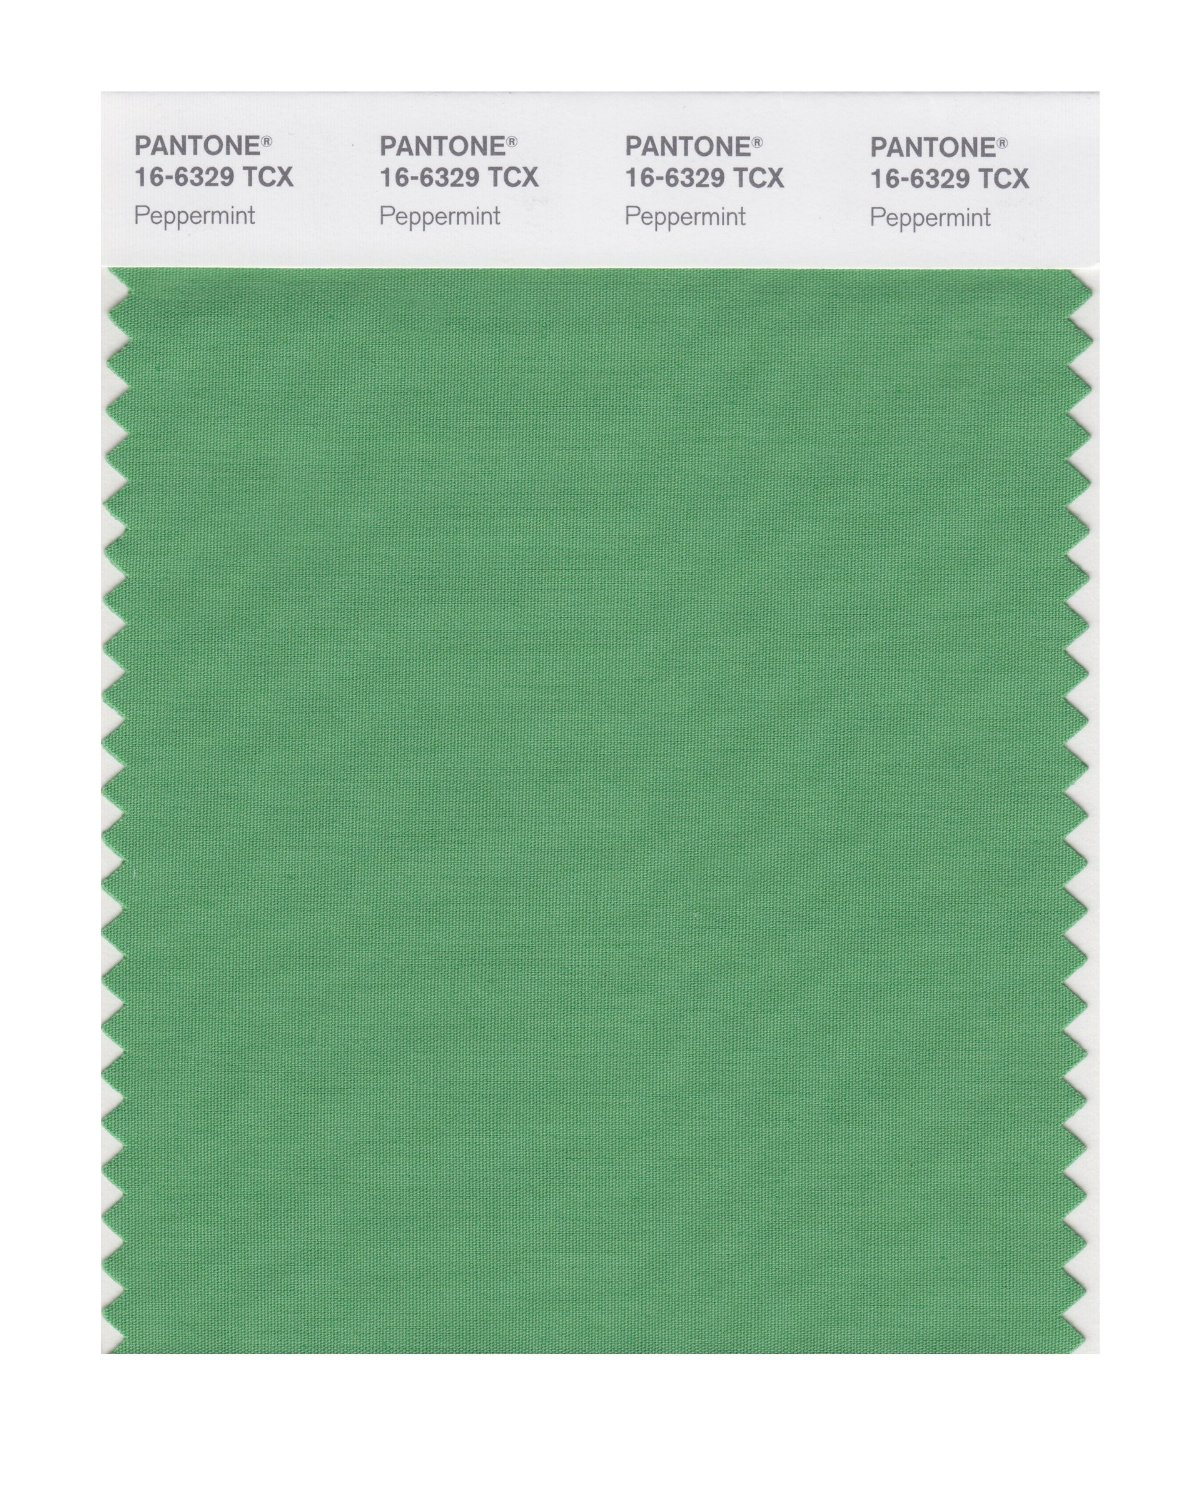 Pantone Smart Swatch 16-6329 Peppermint